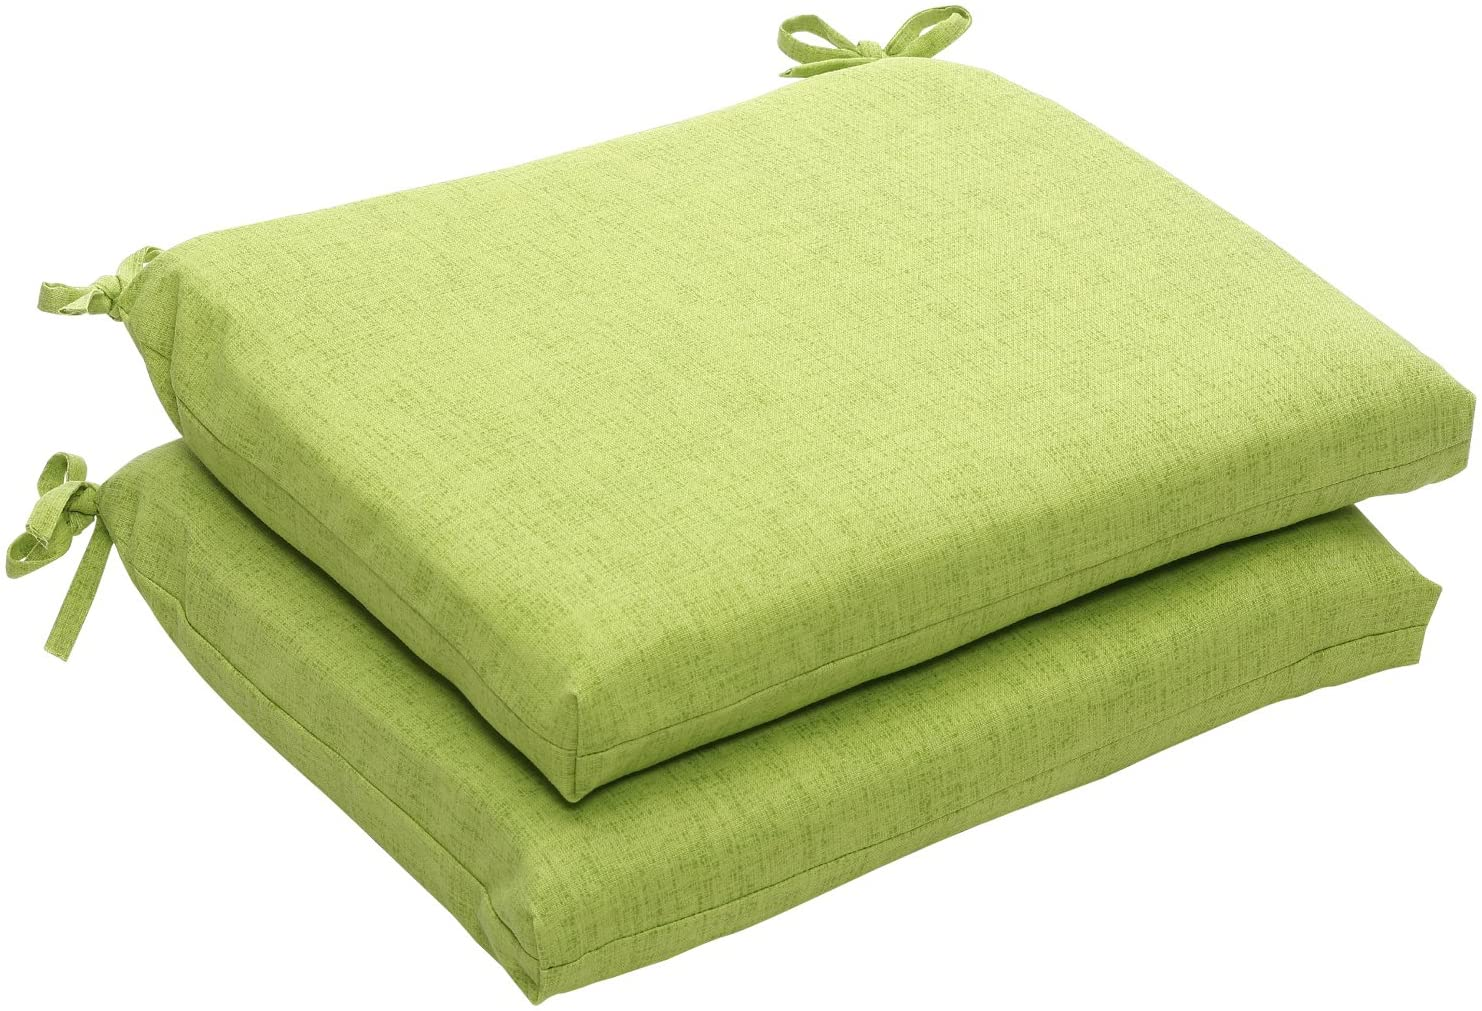 Pillow Perfect Indoor Outdoor Green Textured Solid Square Seat Cushion, 2-Pack